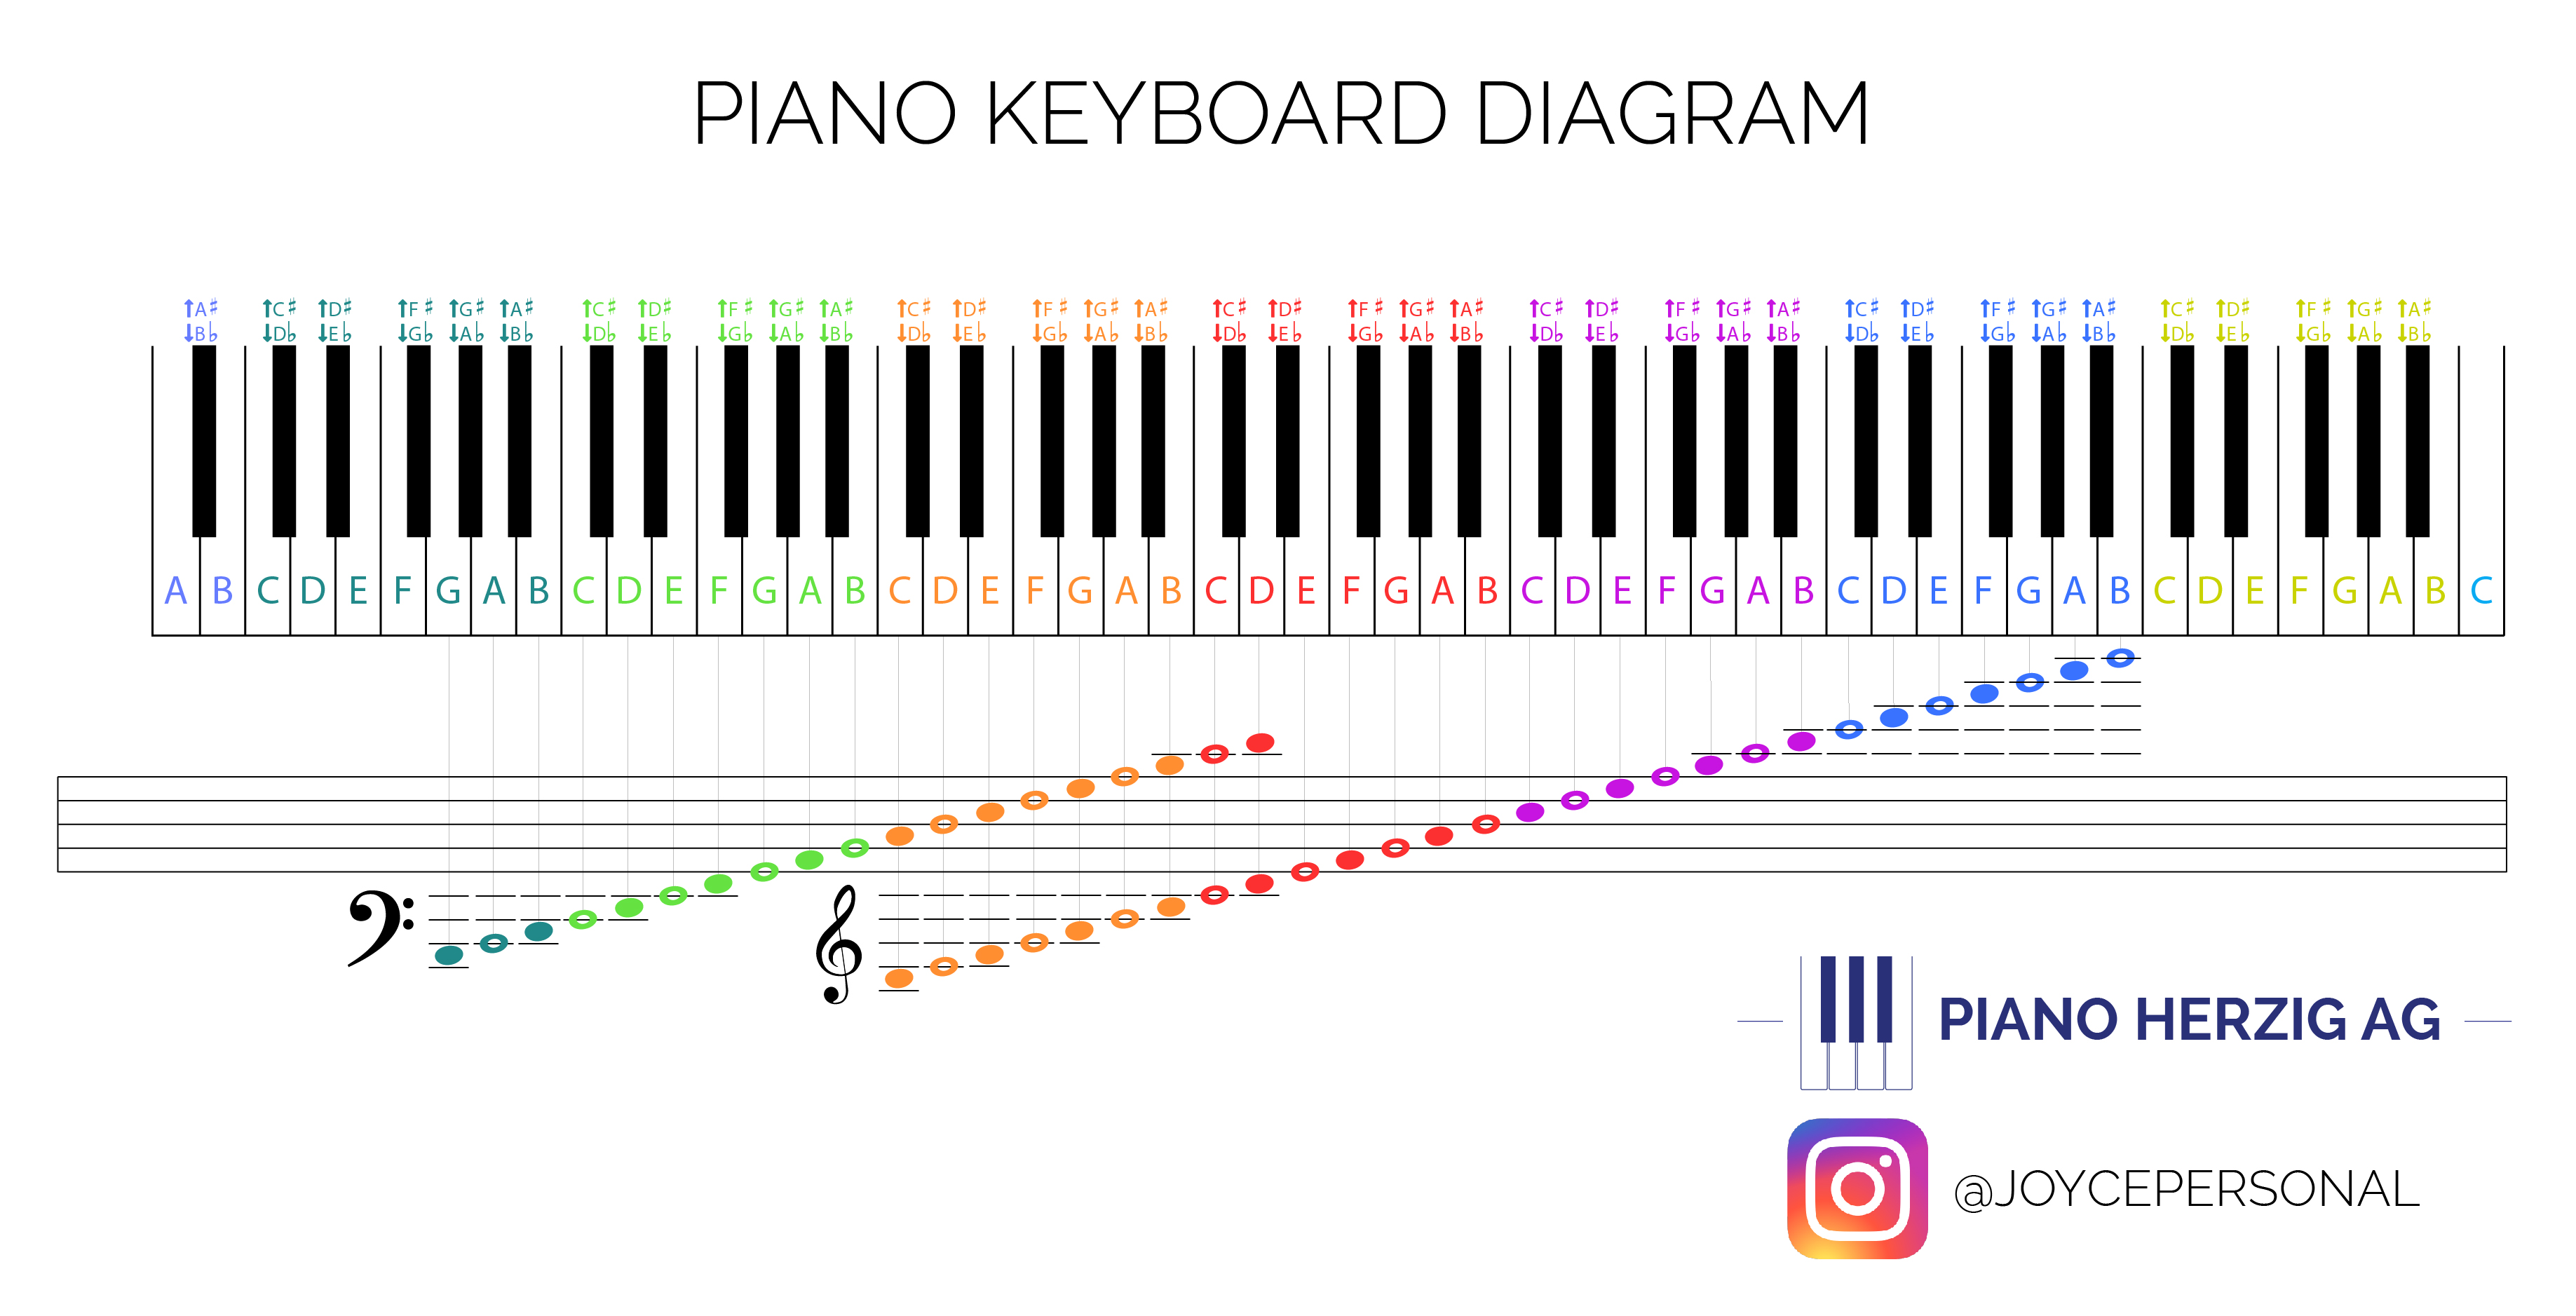 Piano Herzig Ag Keyboard Diagram With Notes